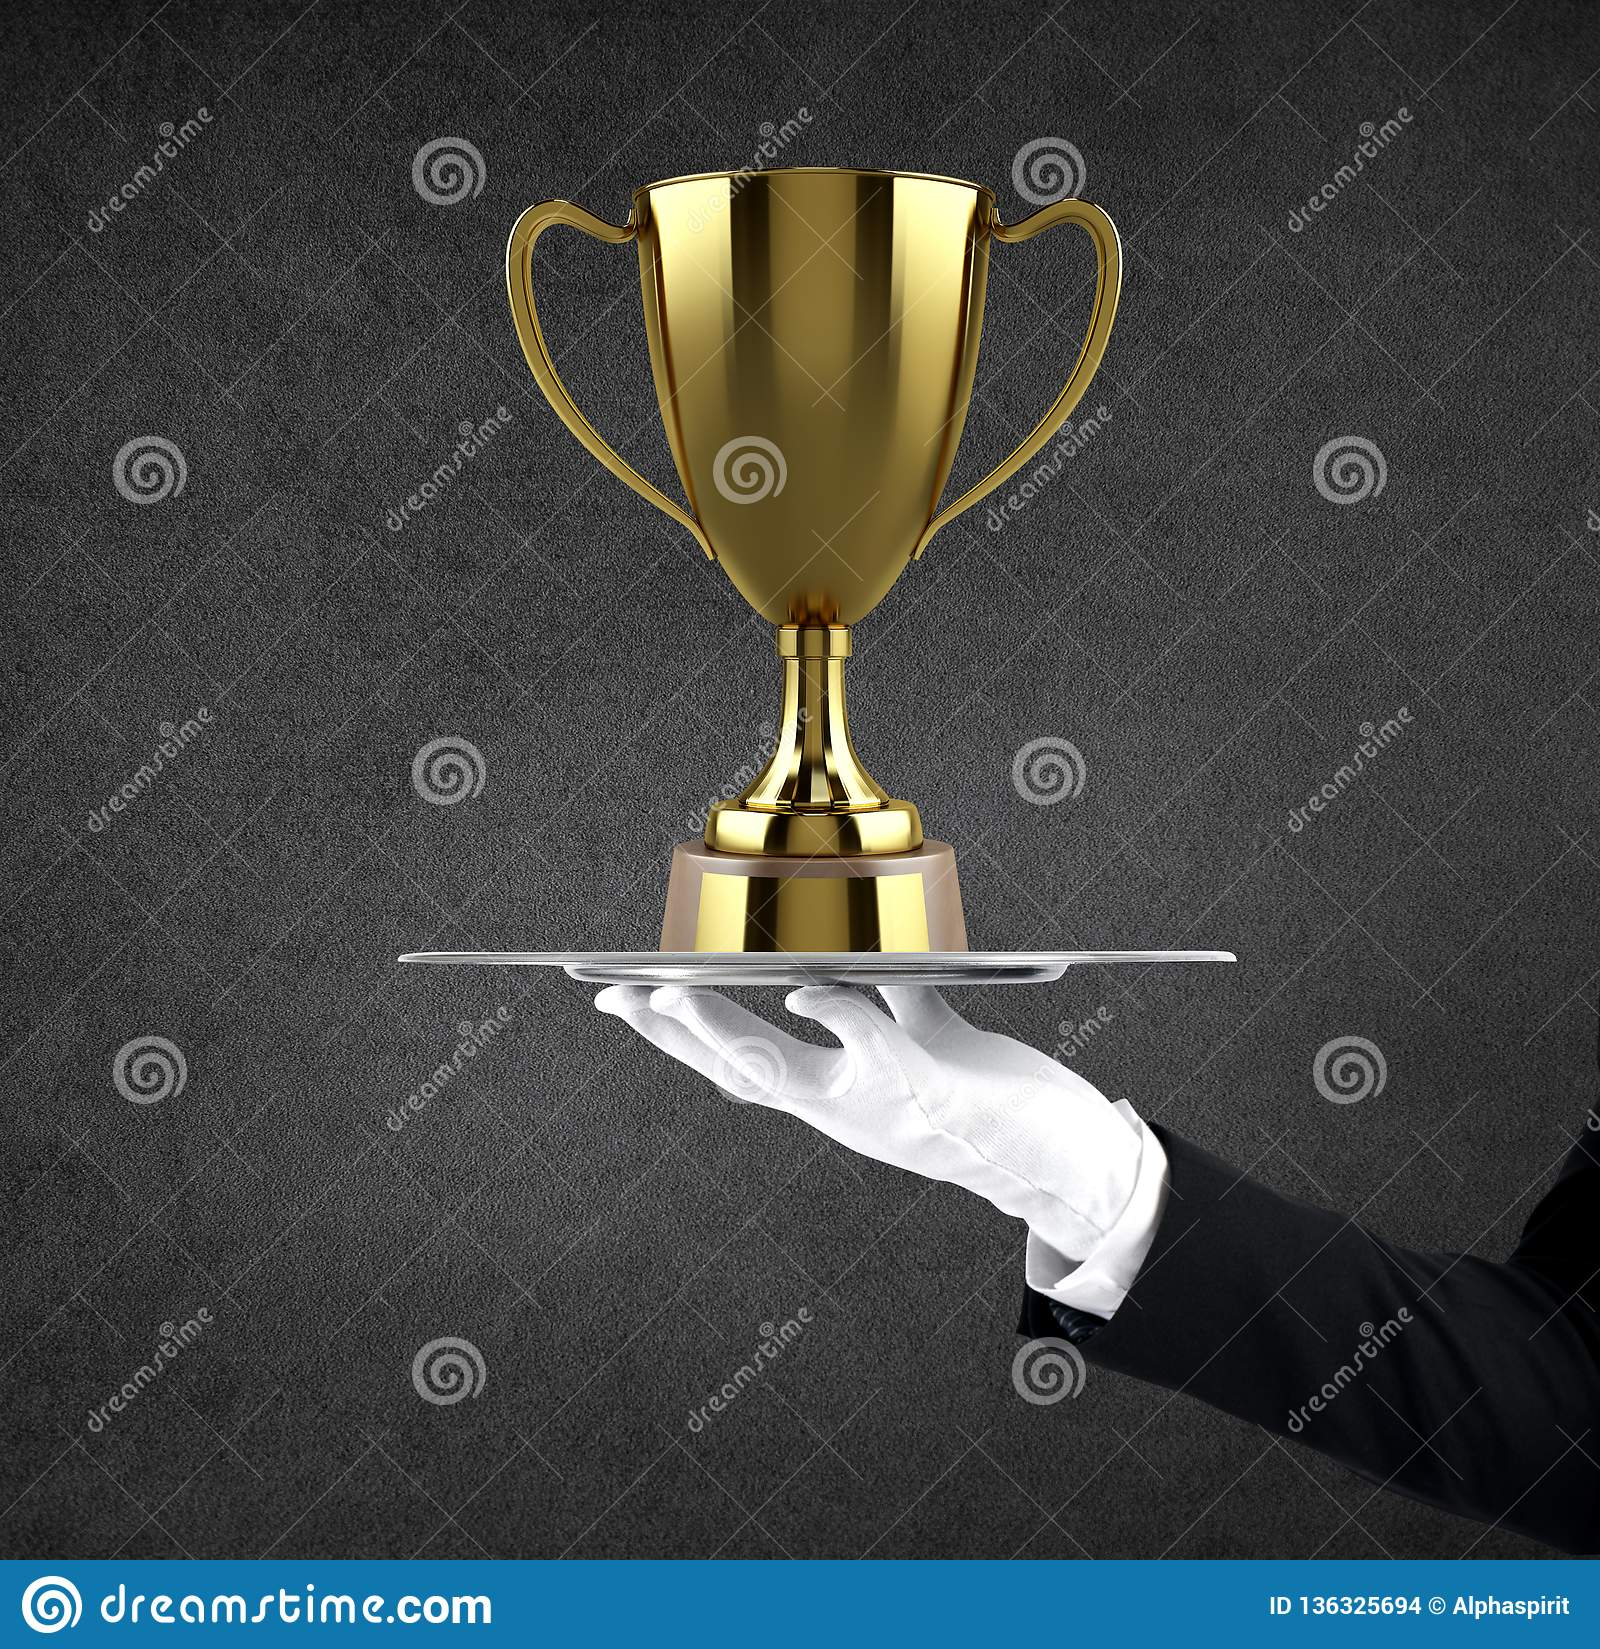 Waiter that holds a tray with soccer golden cup. Concept of first class service on soccer